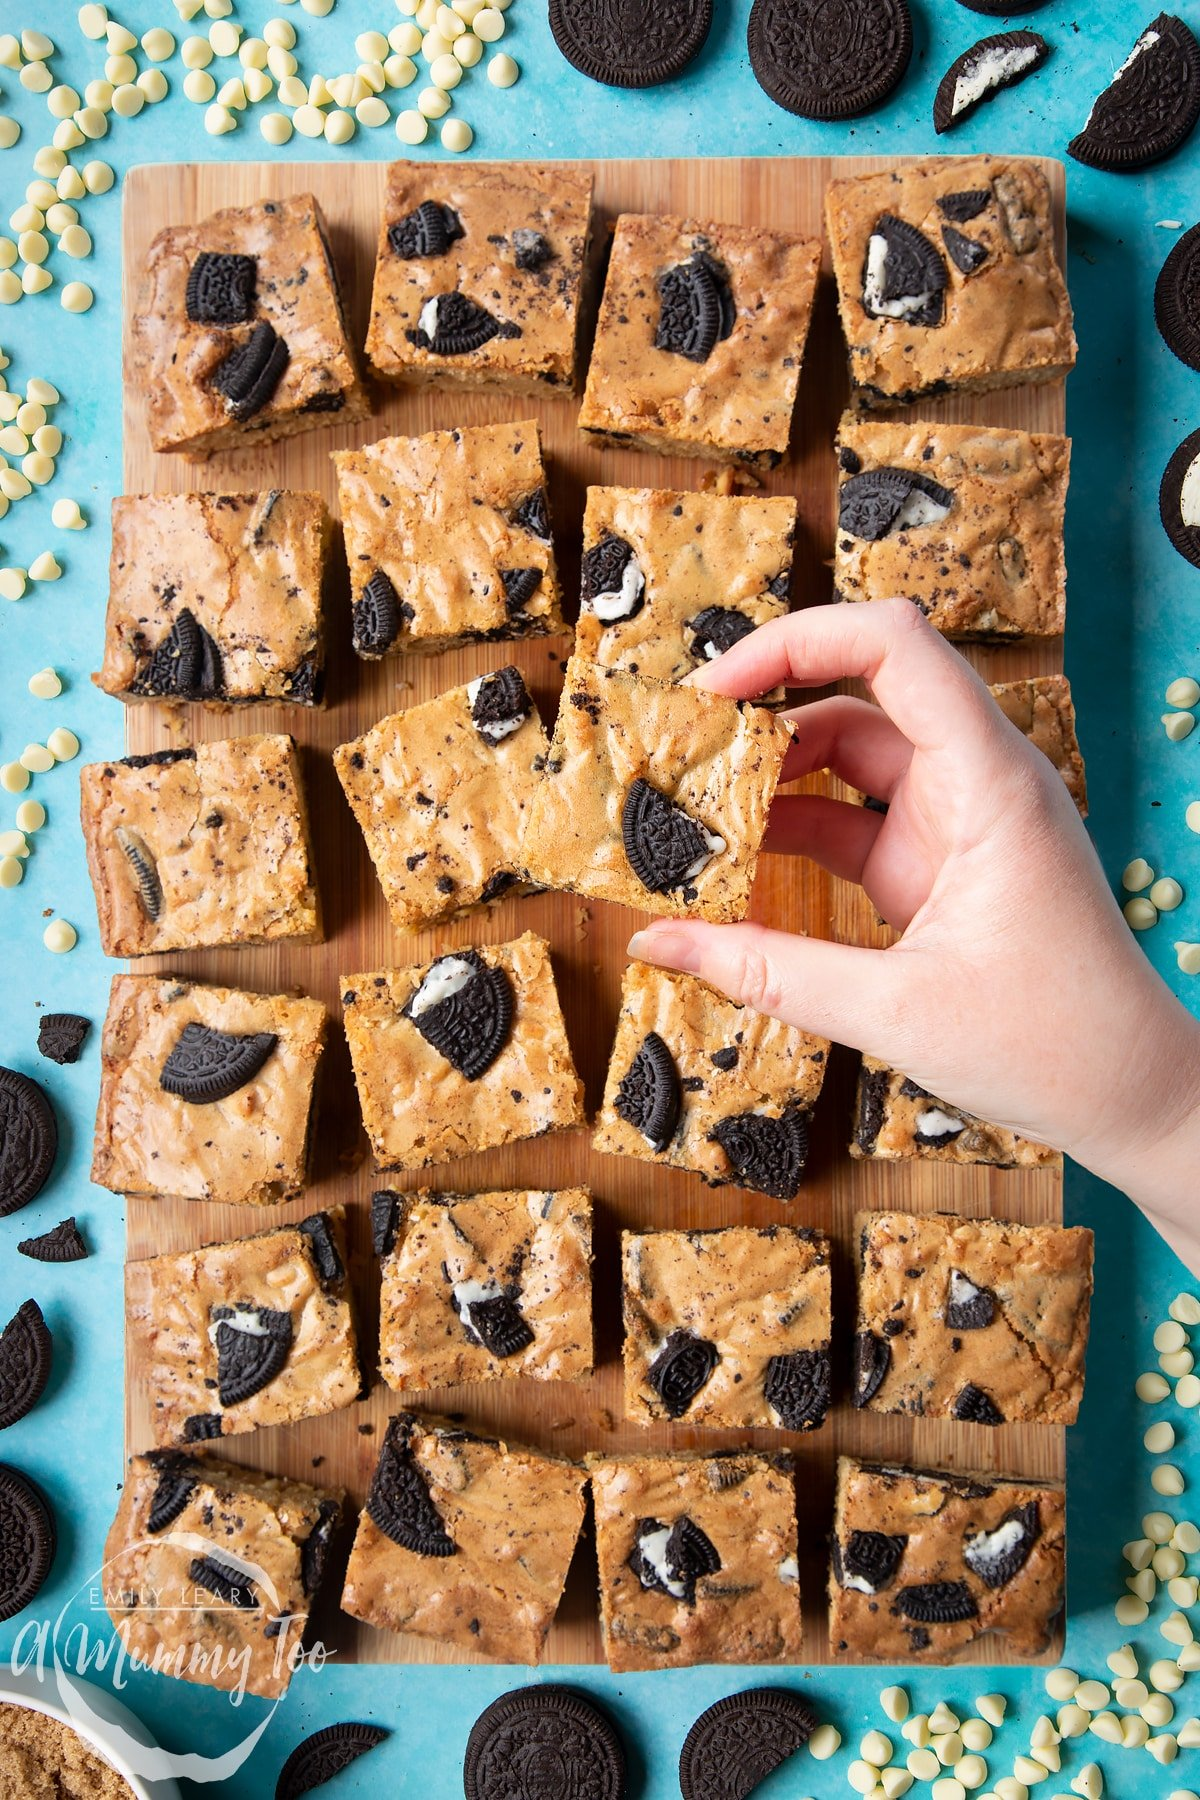 Overhead shot of a hand holding an Oreo Blondie over a wooden board of Oreo Blondies